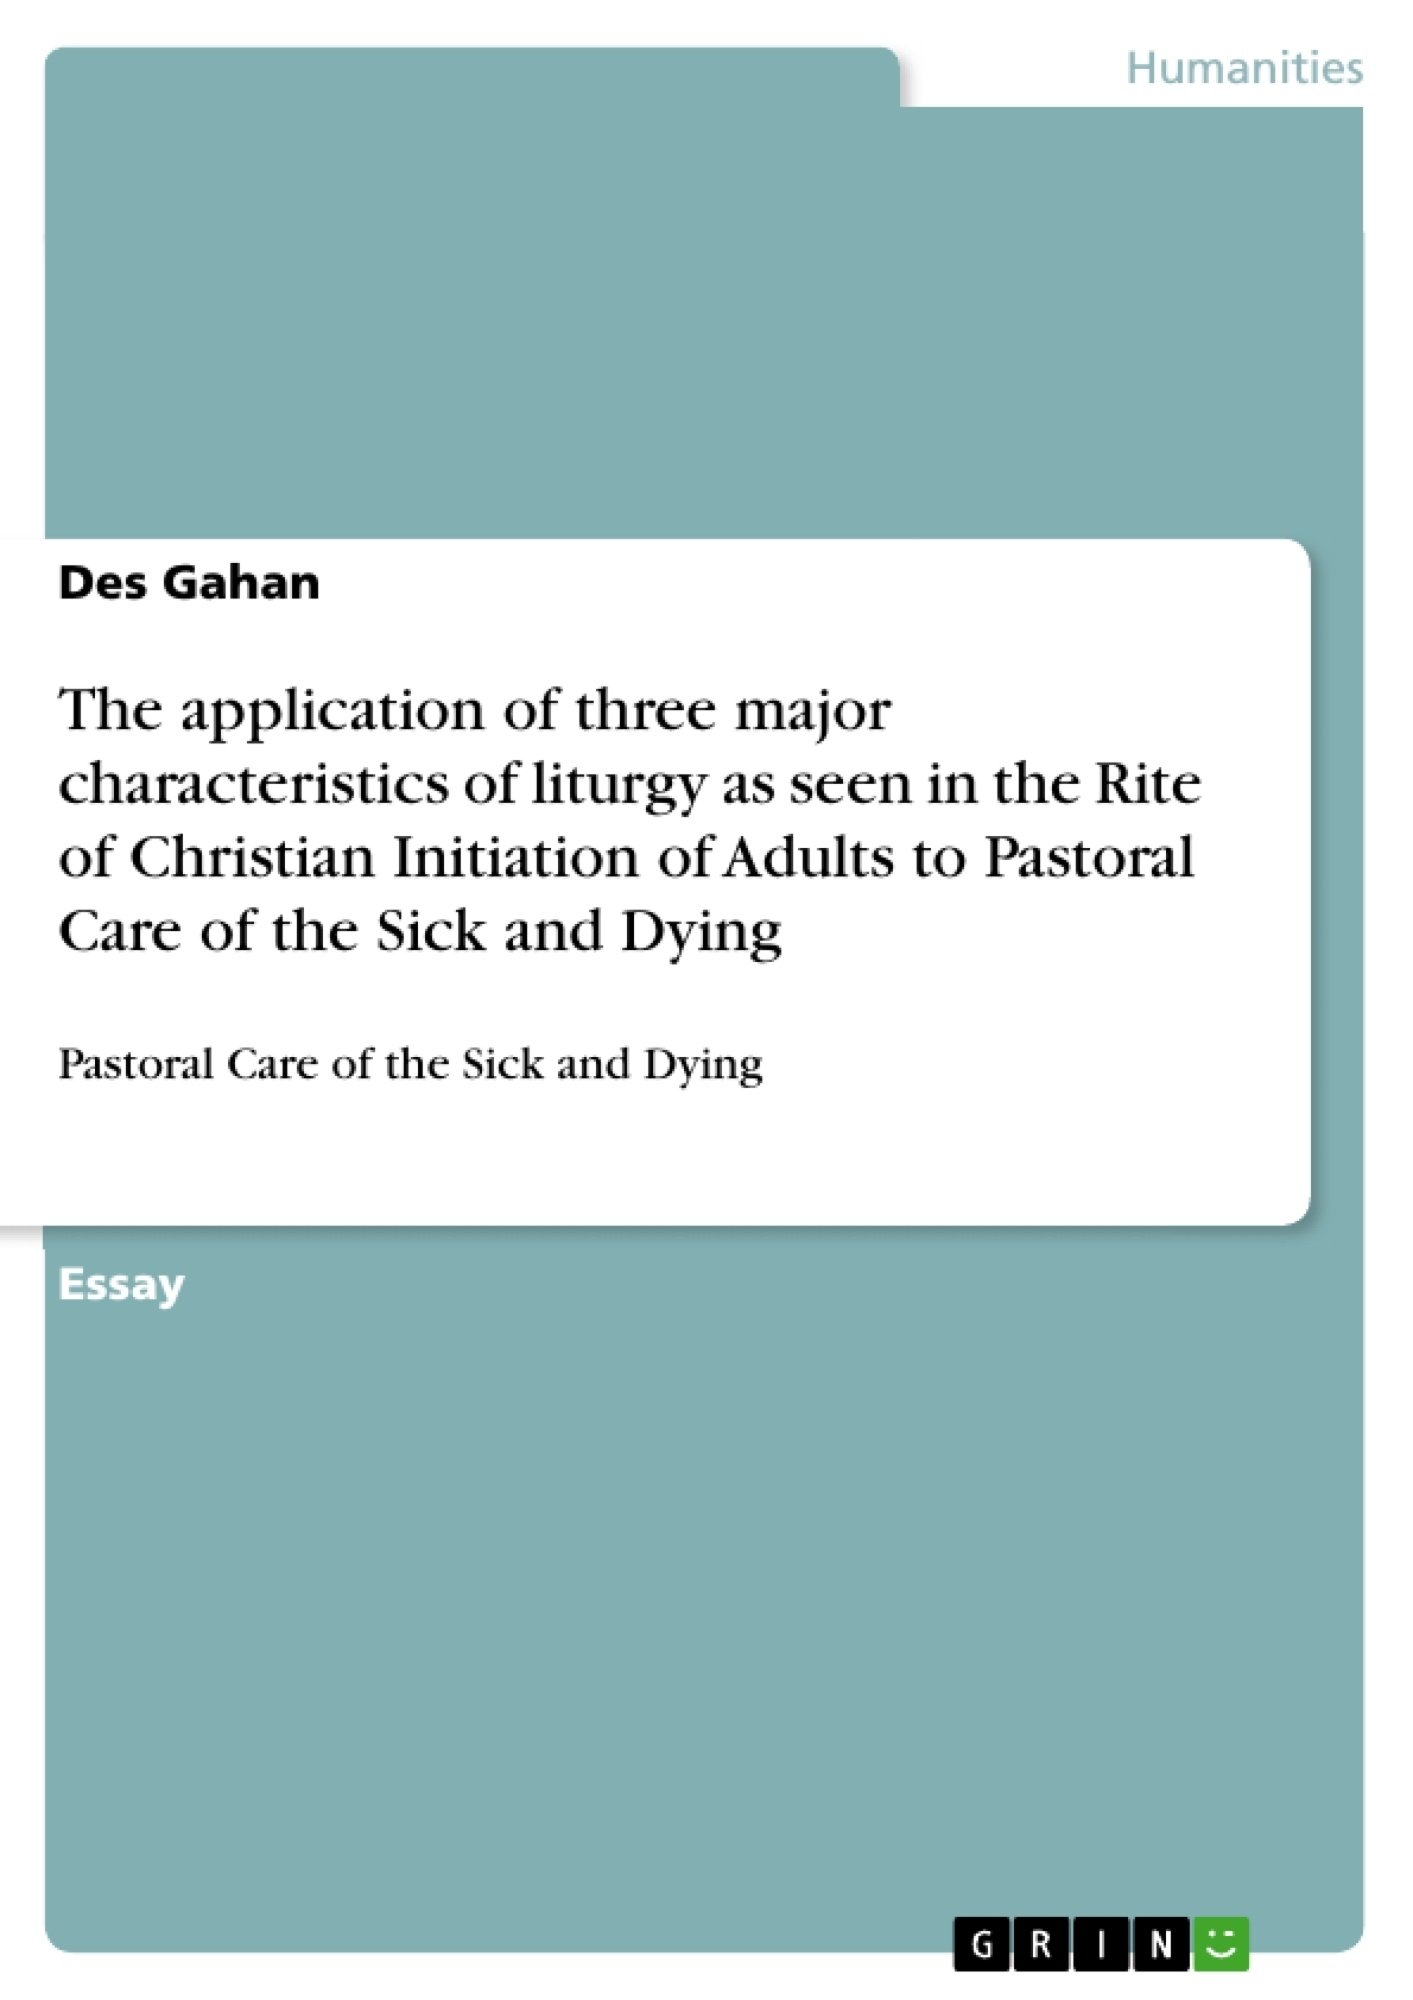 Title: The application of three major characteristics of liturgy as seen in the Rite of Christian Initiation of Adults to Pastoral Care of the Sick and Dying